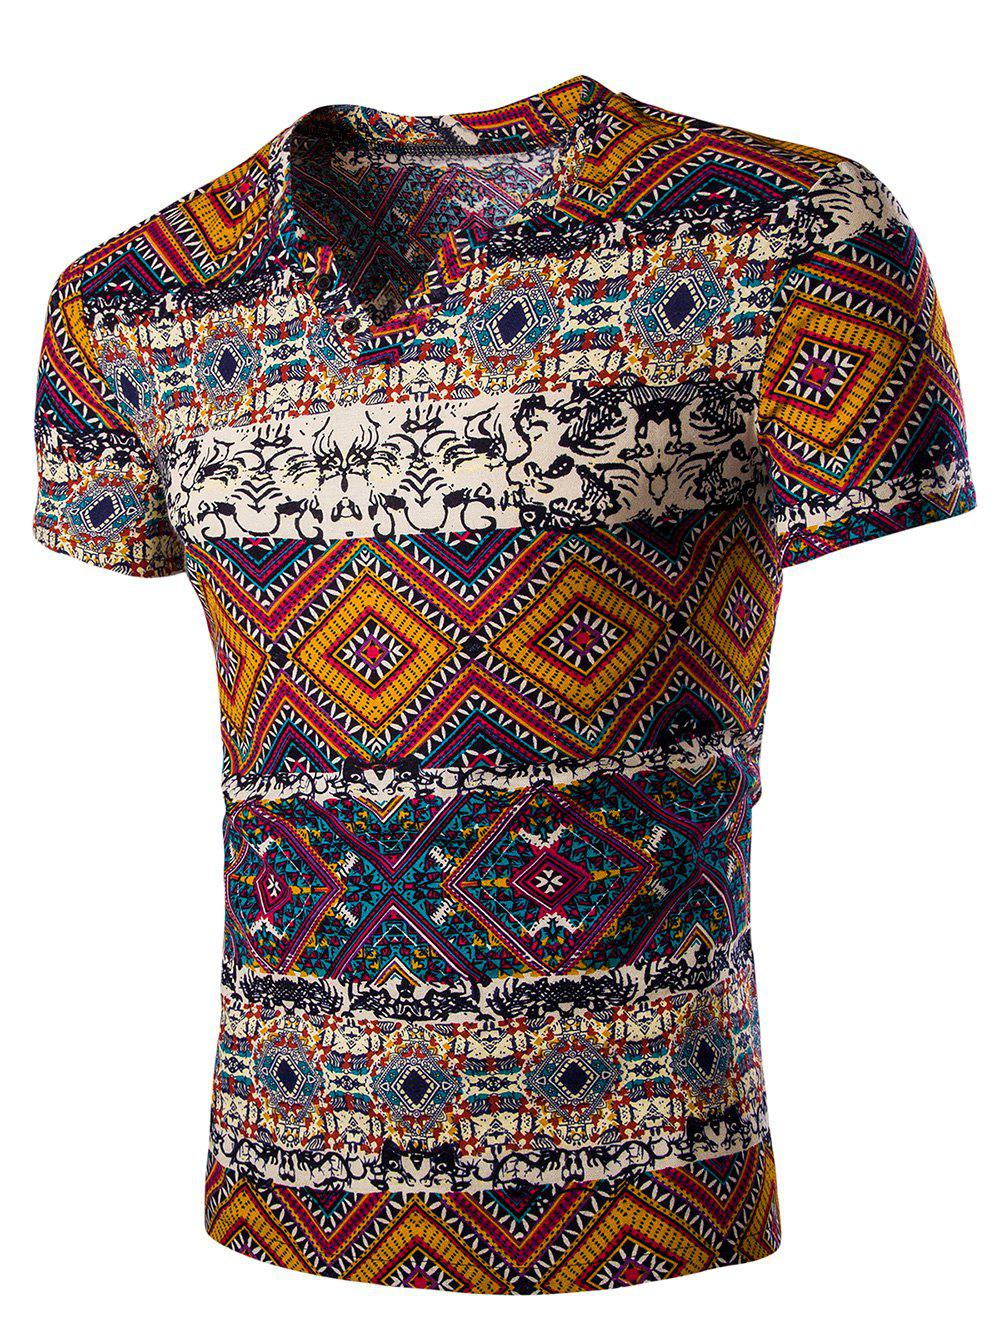 Men's Fashion V Neck Abstract Printing Short Sleeves T-Shirt